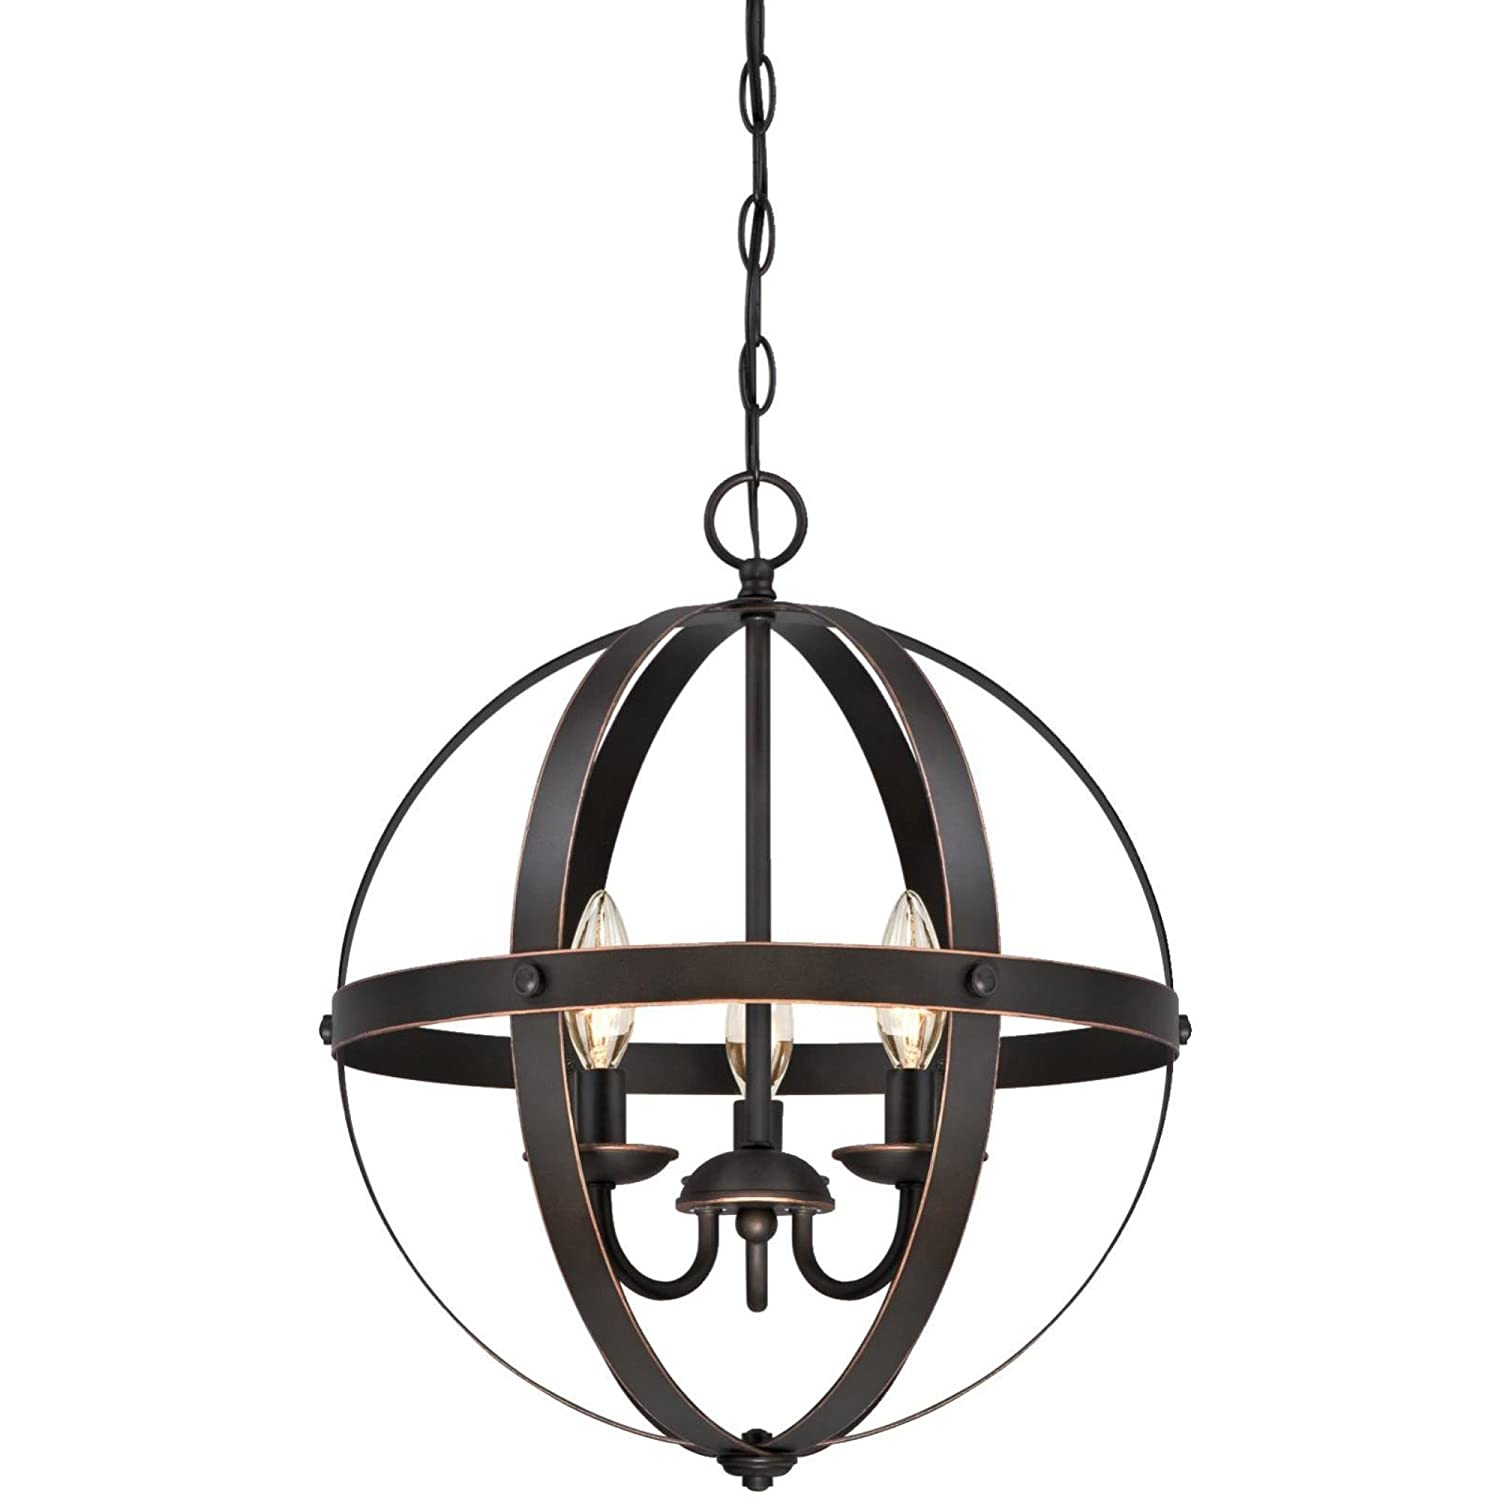 Westinghouse 6341800 Stella Mira Three-Light Indoor Chandelier, Oil Rubbed Bronze Finish with Highlights